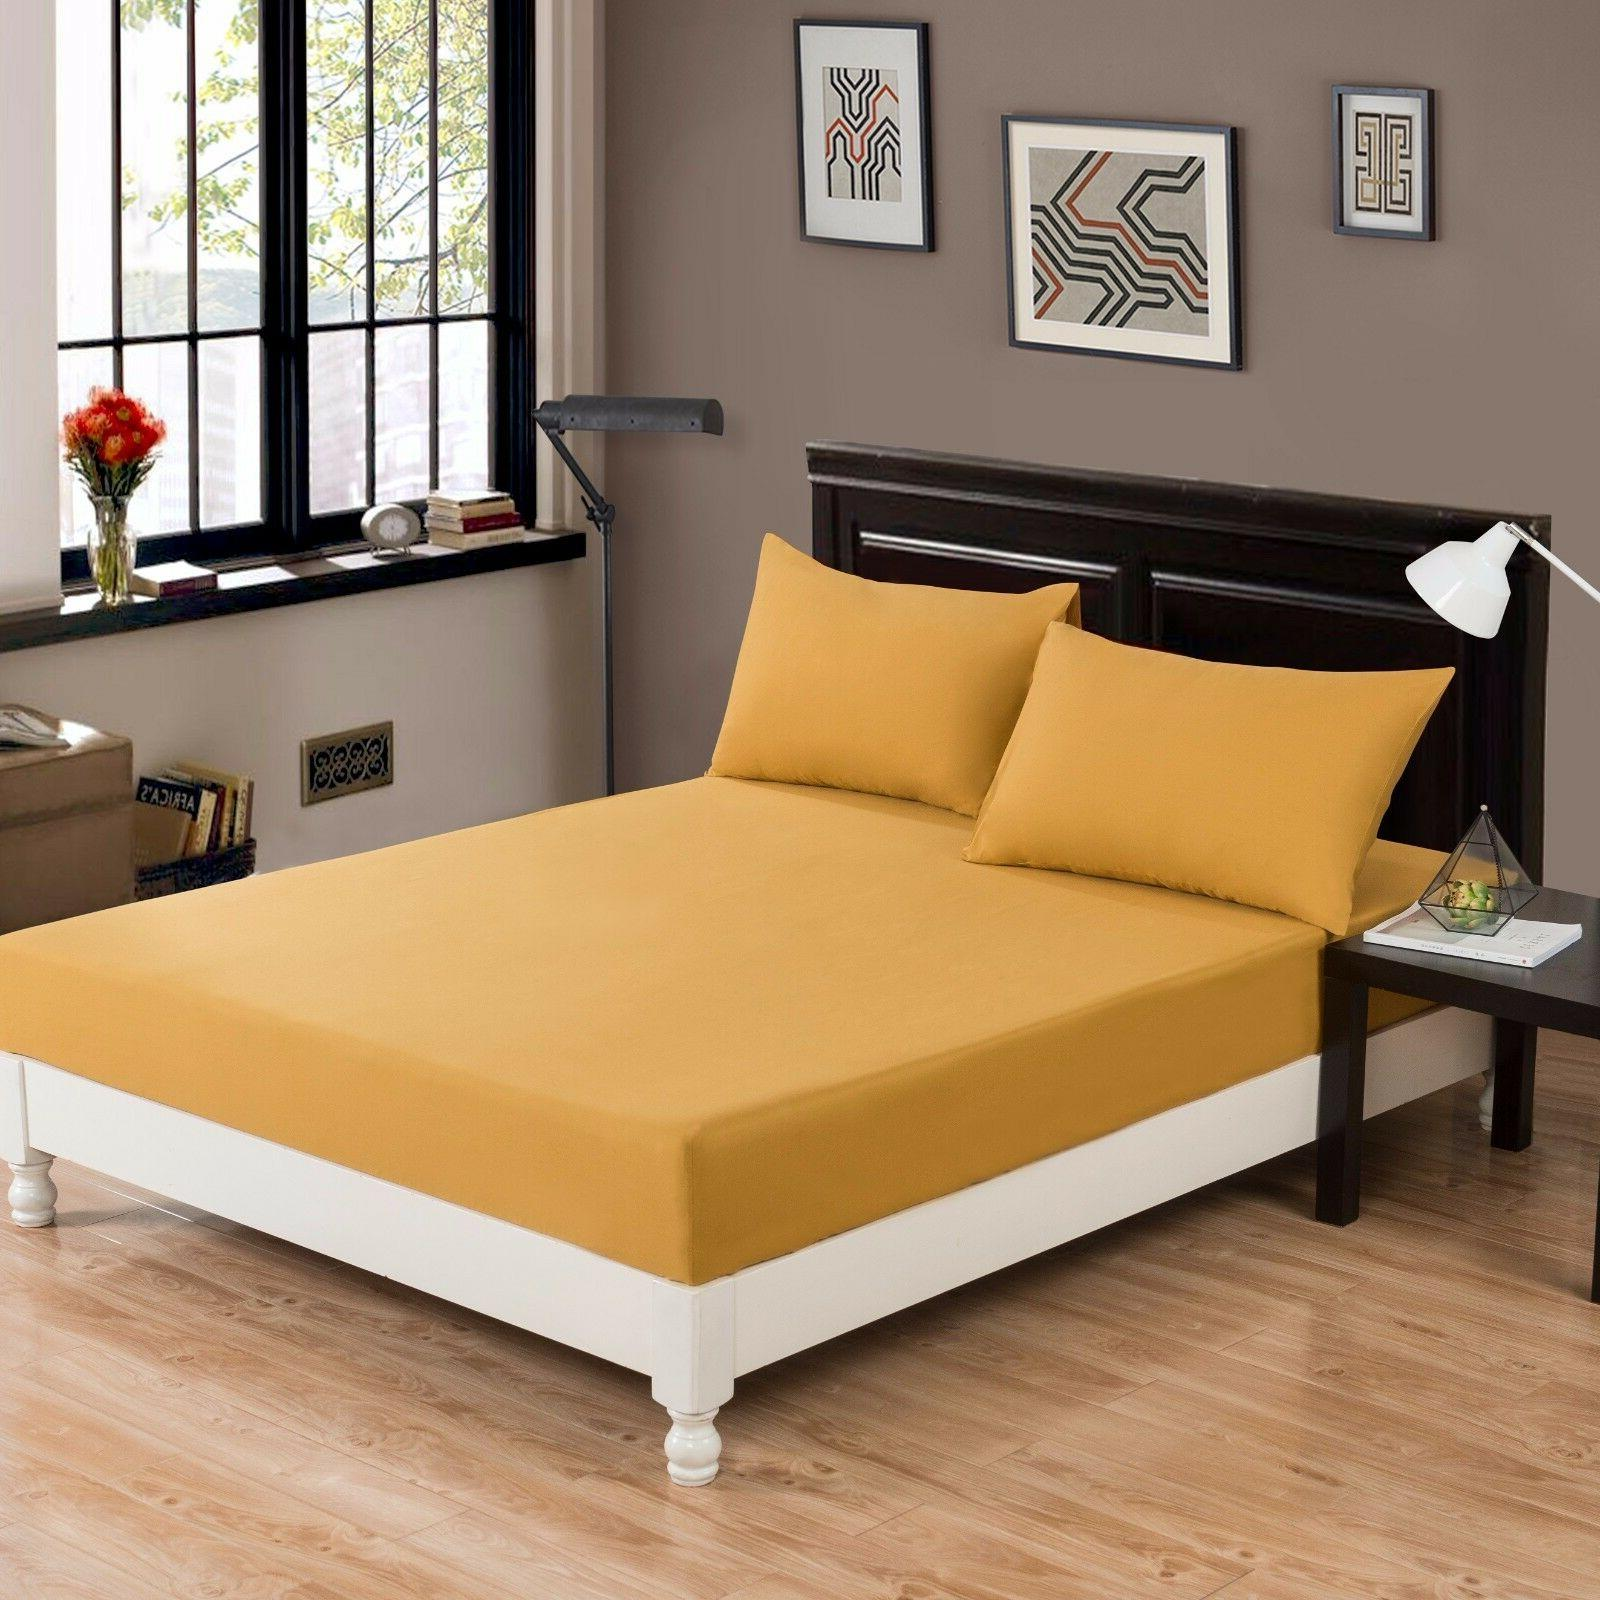 DaDa Bedding Mustard Yellow Soft 100% Cotton Fitted Sheet On